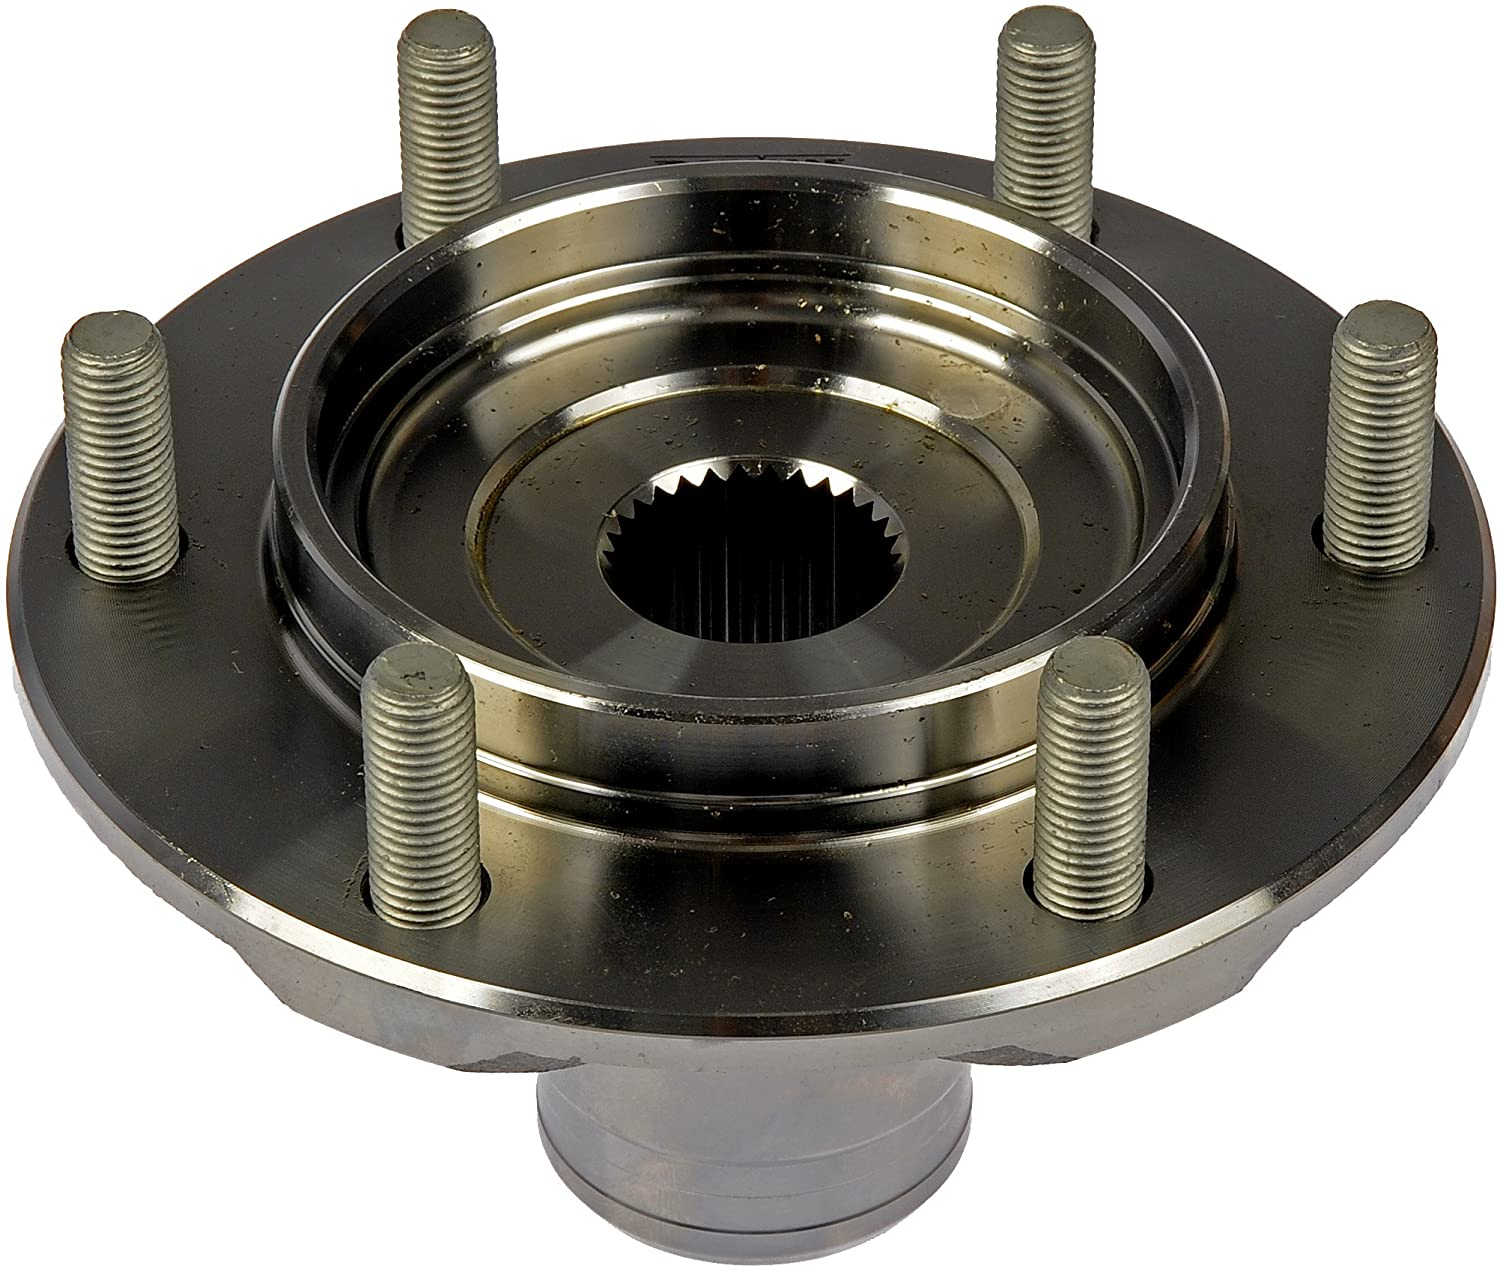 Dorman 930-417 Front Wheel Max Max 45% OFF 81% OFF Hub Select Models Toyota for